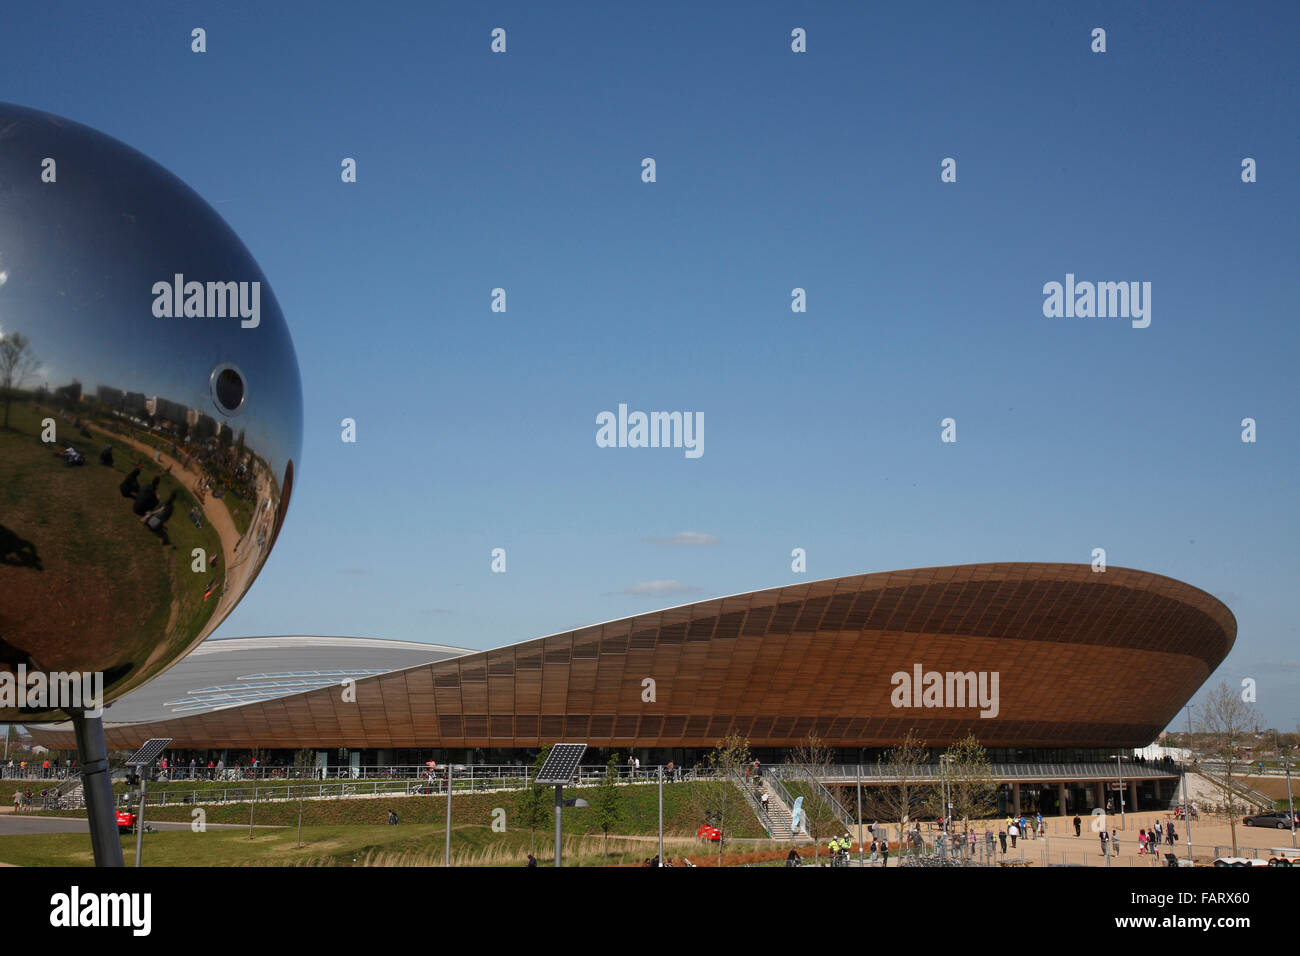 The velodrome and reflective spherical sculpture. - Stock Image